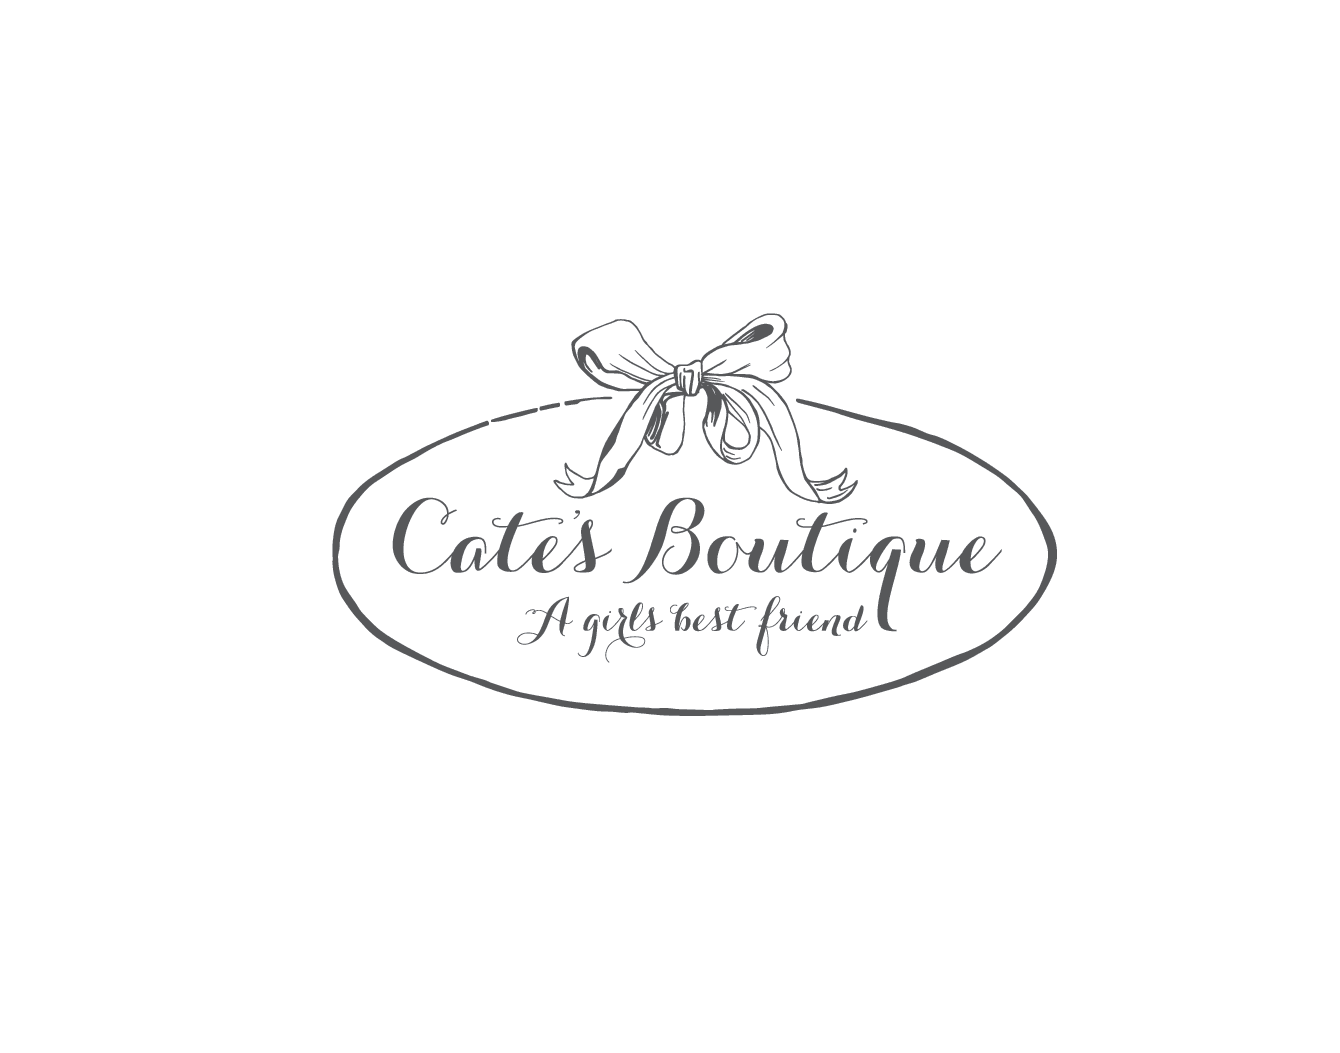 Cates Boutique logo